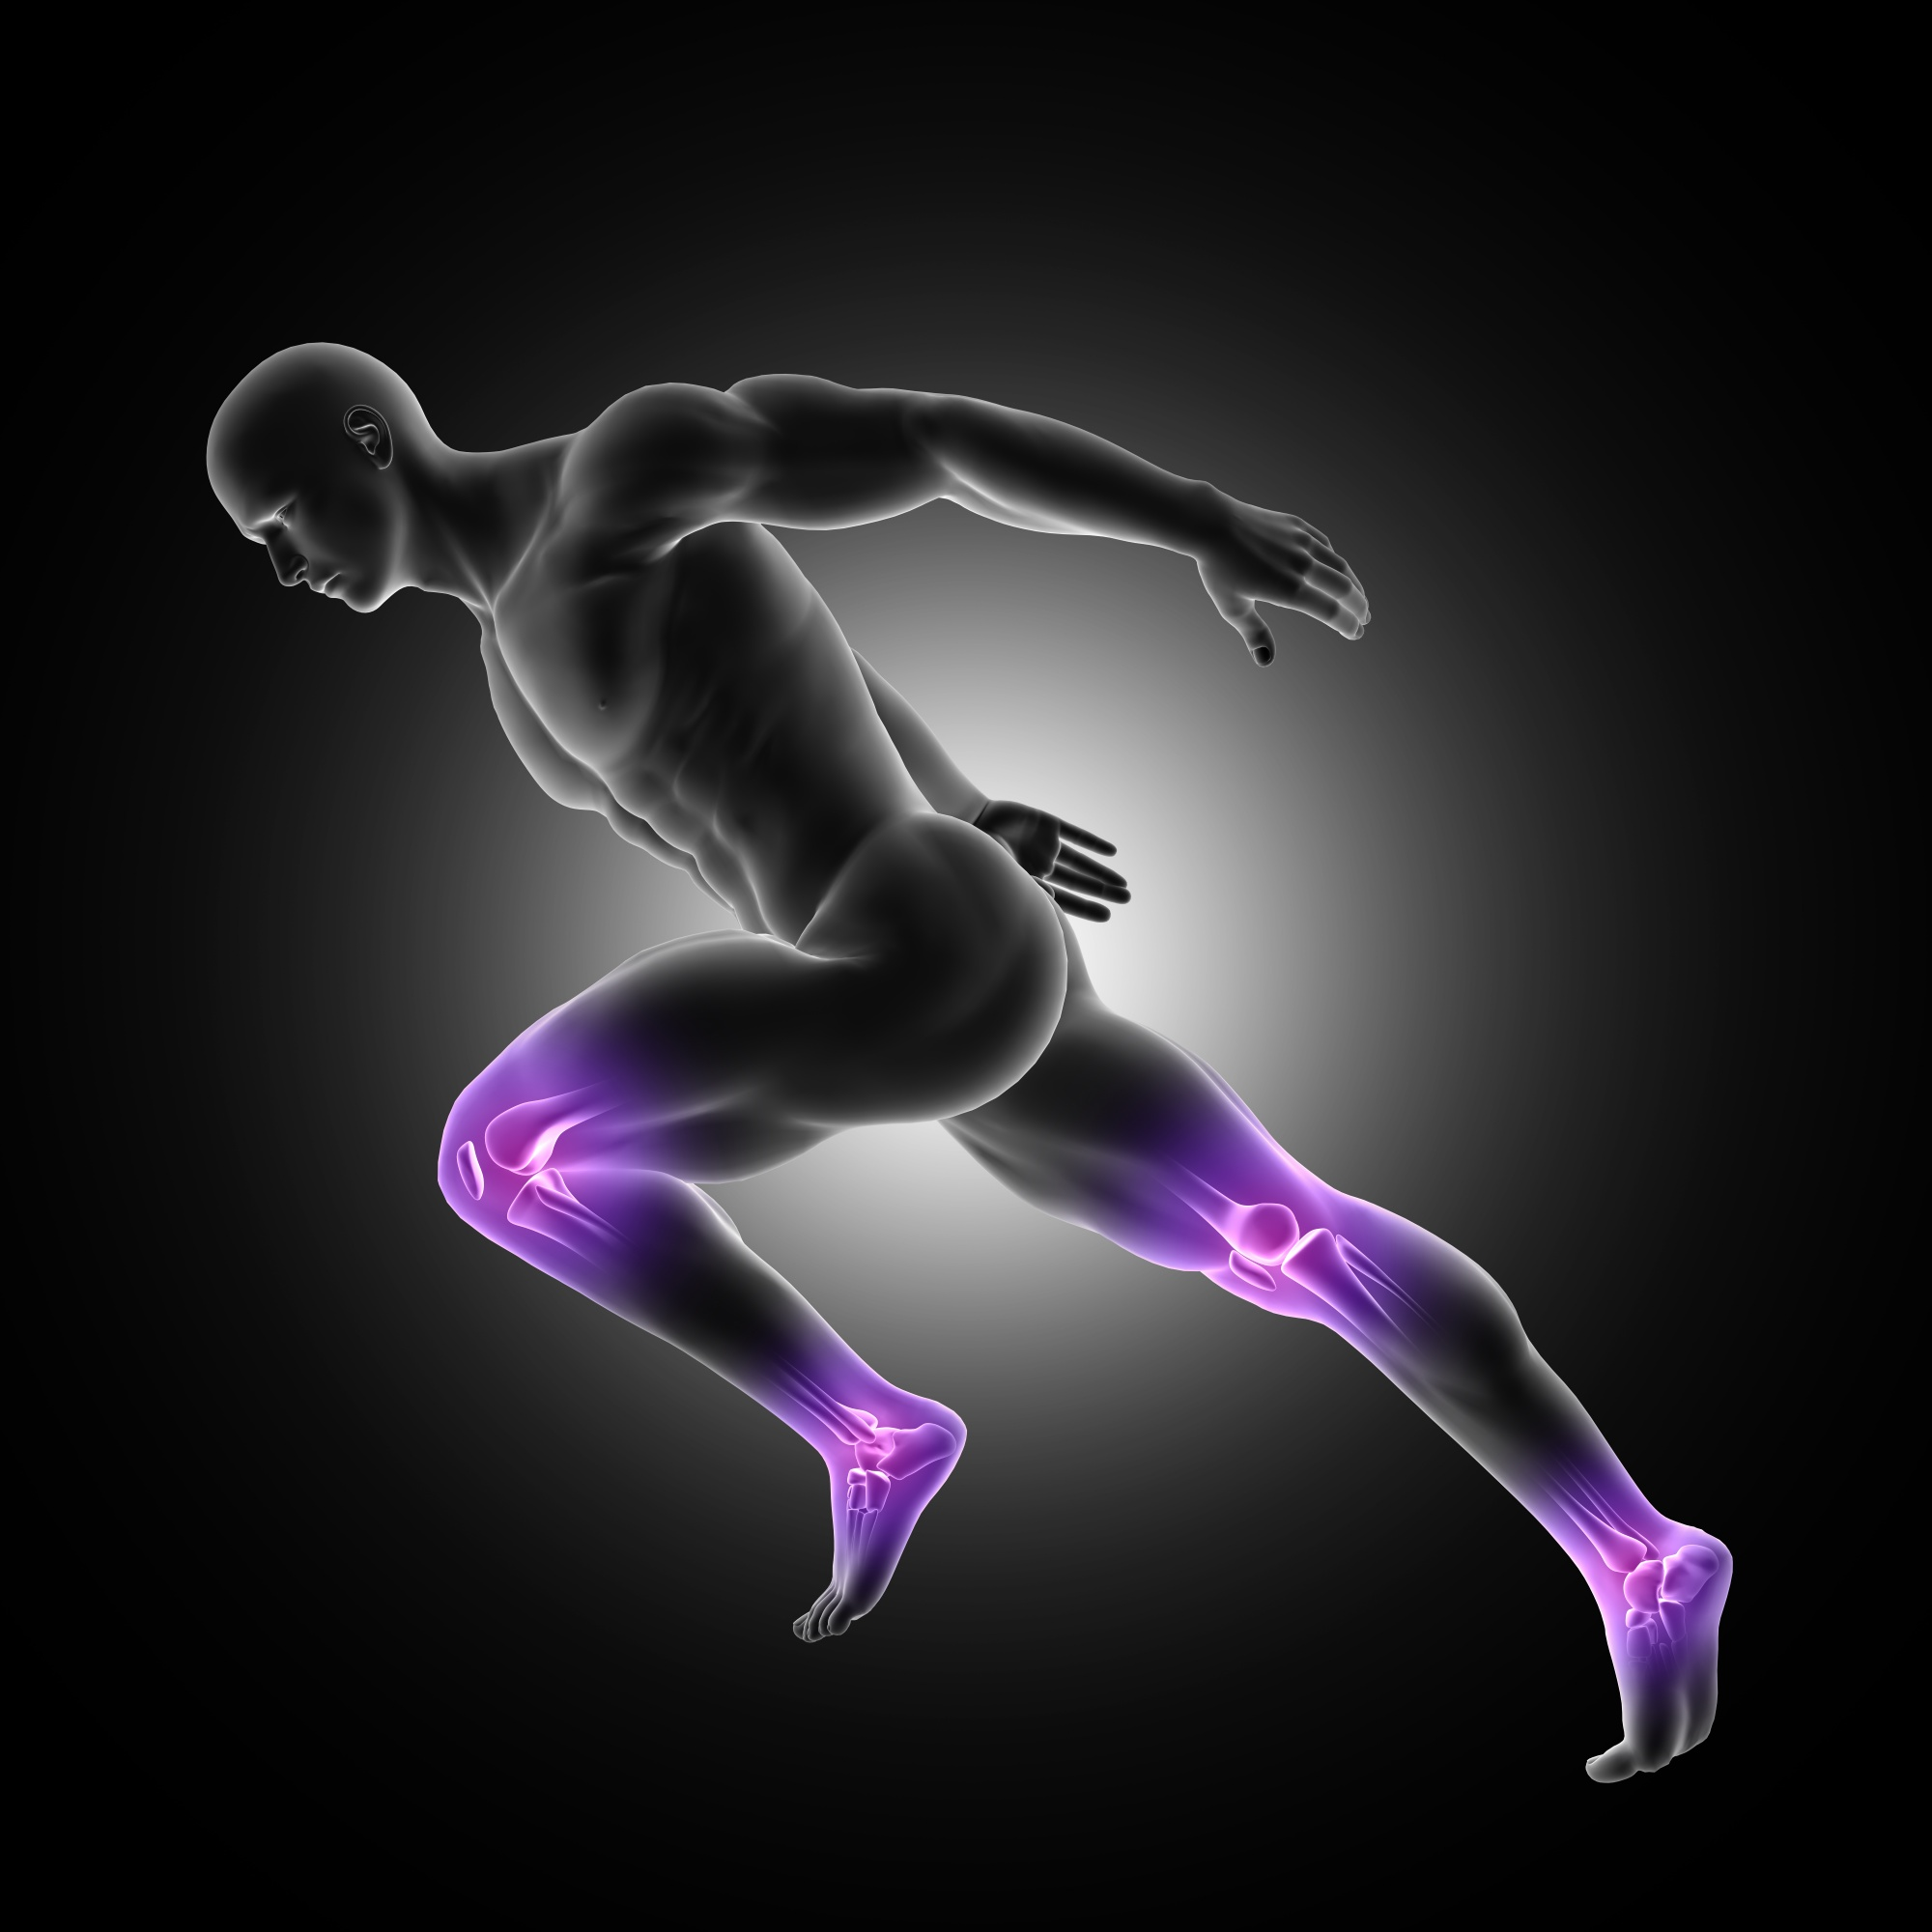 3d render of a male figure in sprinting pose with leg joints highlighted